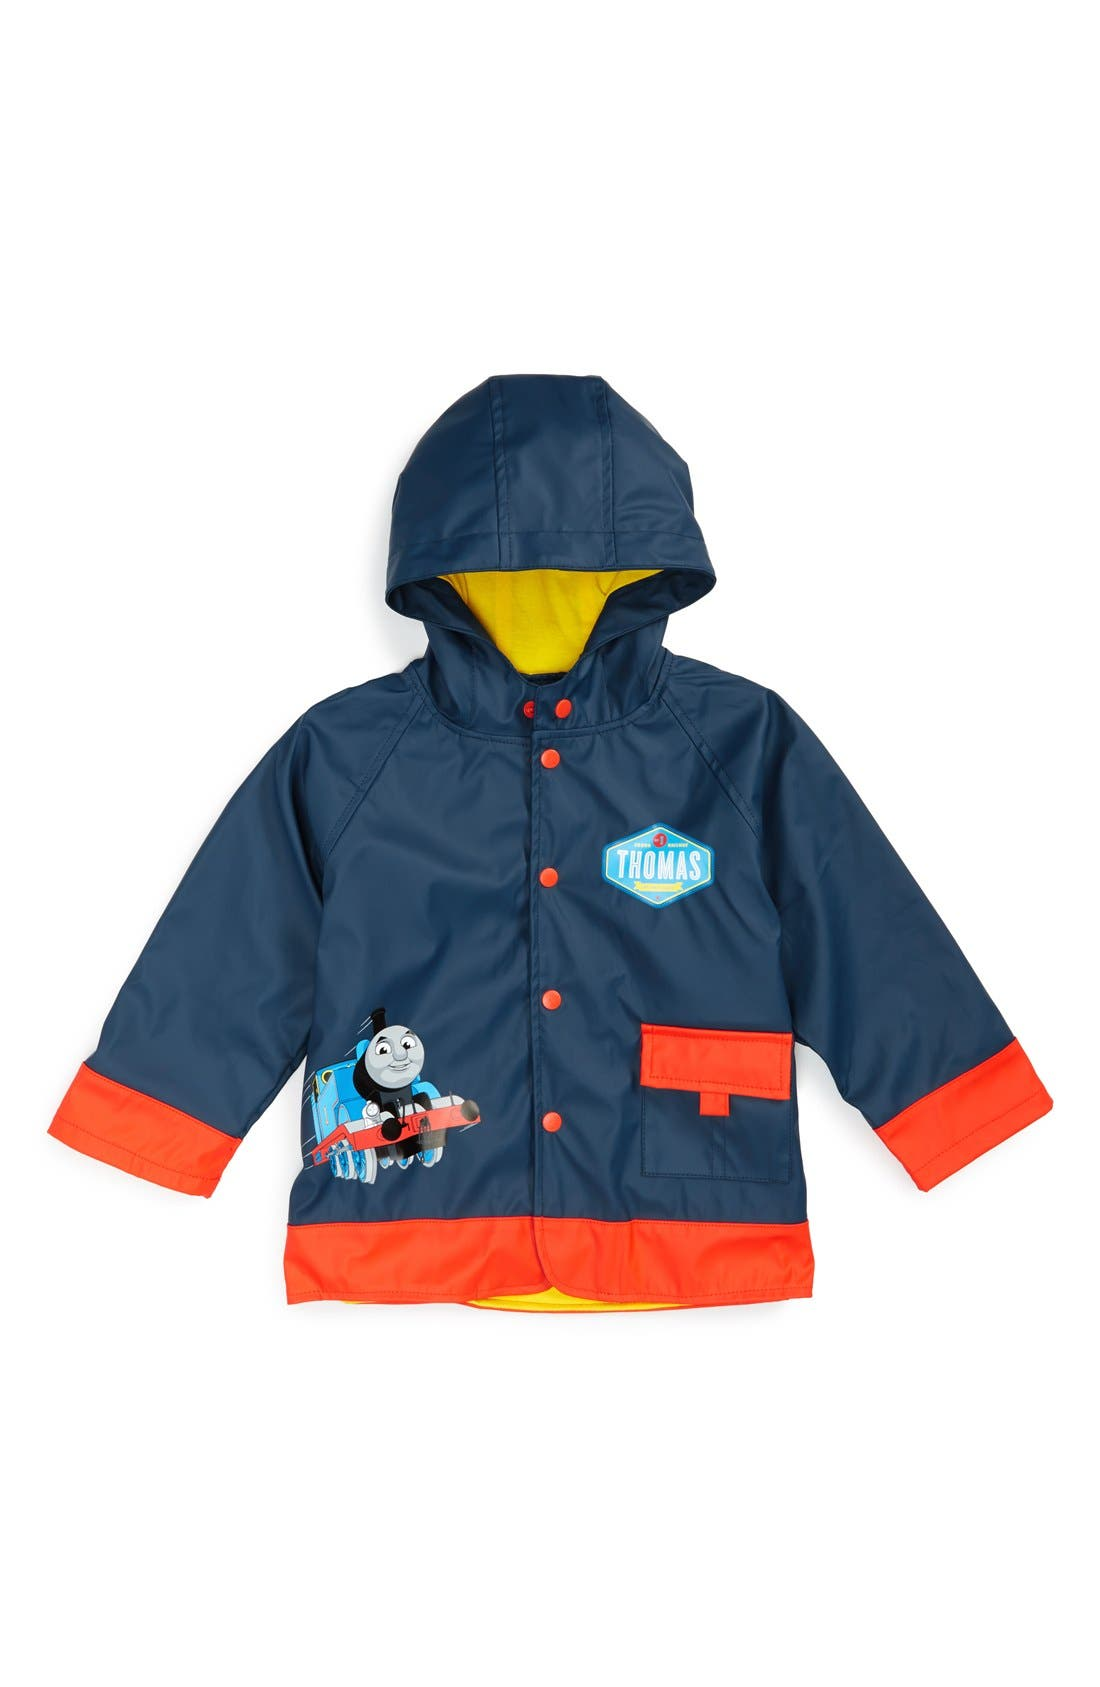 Main Image - Western Chief 'Thomas the Tank Engine' Raincoat (Toddler & Little Kid)